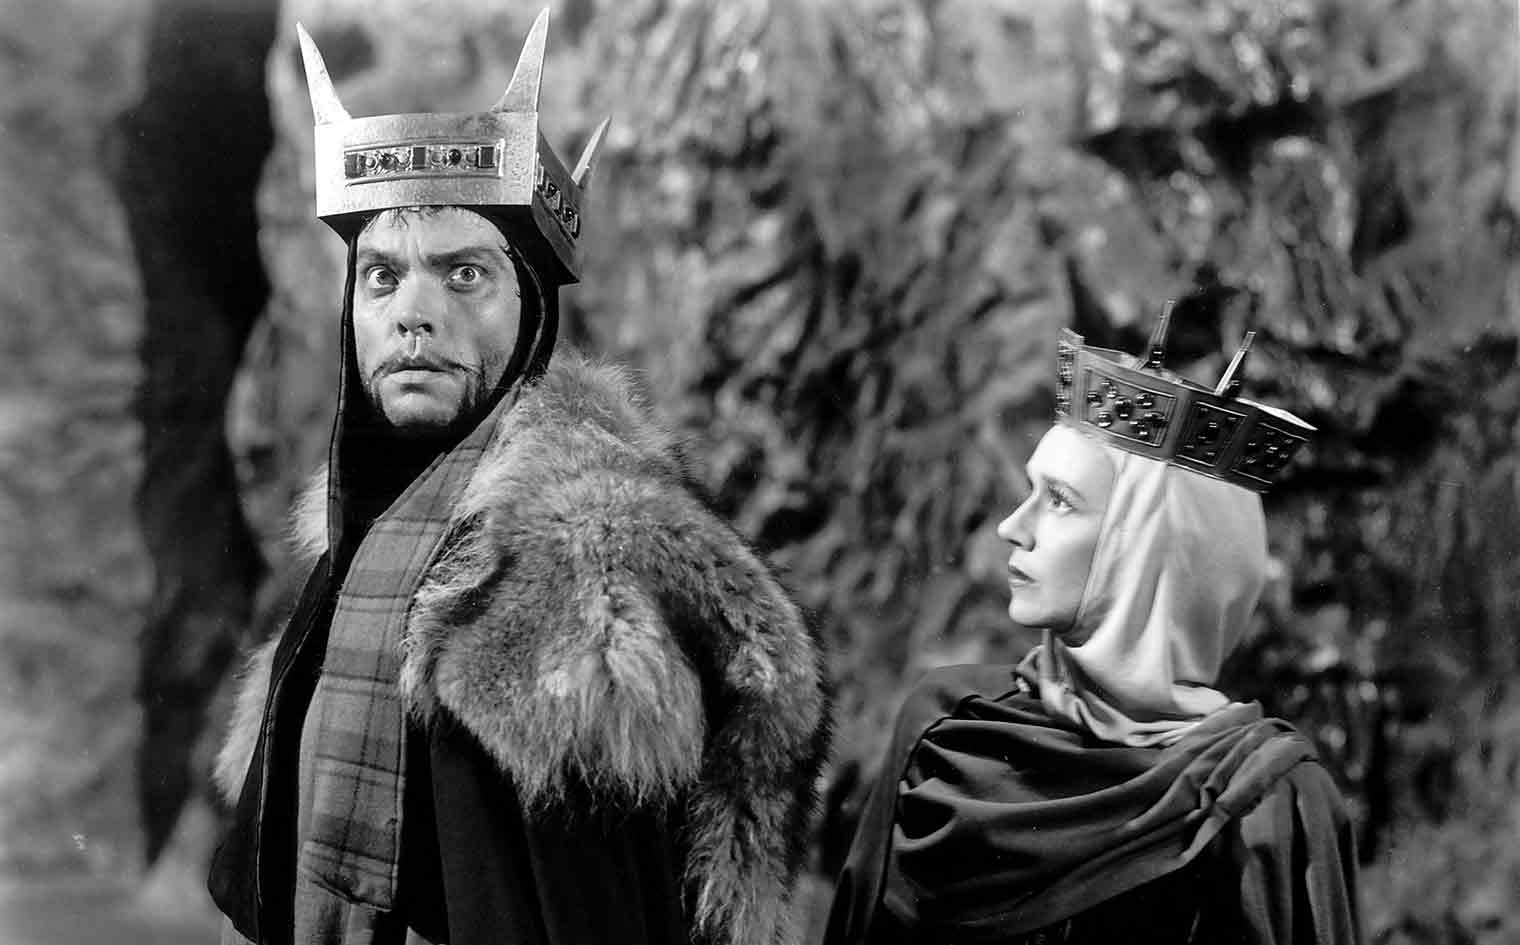 Orson Welles as Macbeth and Jeanette Nolan as Lady Macbeth.